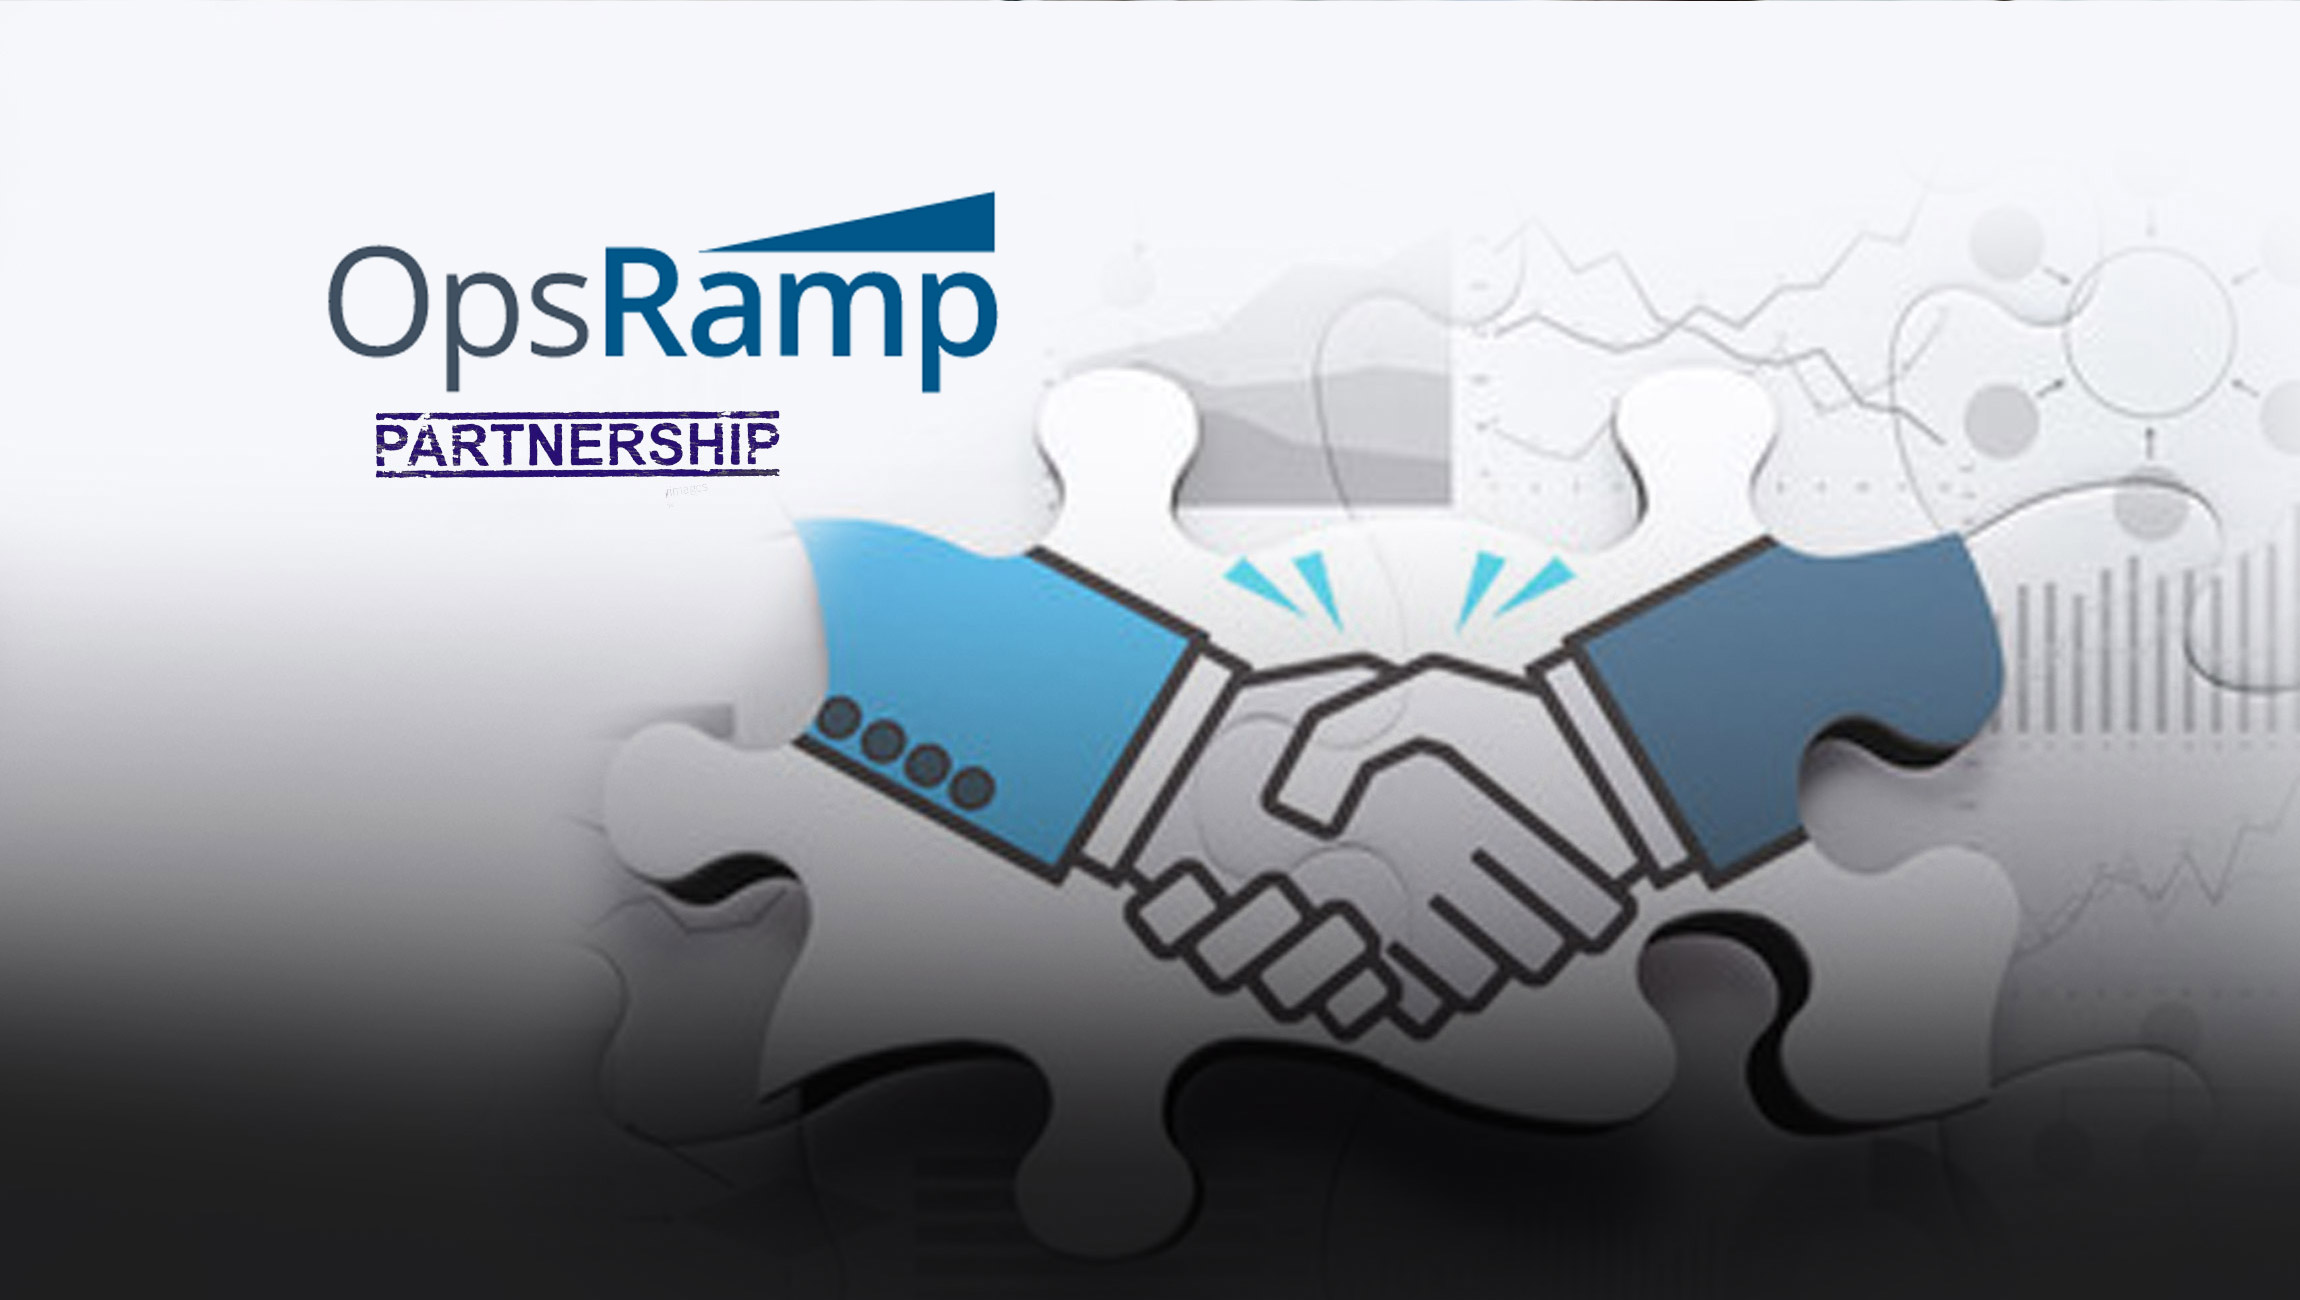 OpsRamp Fuels Sales Growth with New Channel Leadership and Partner Program Enhancements